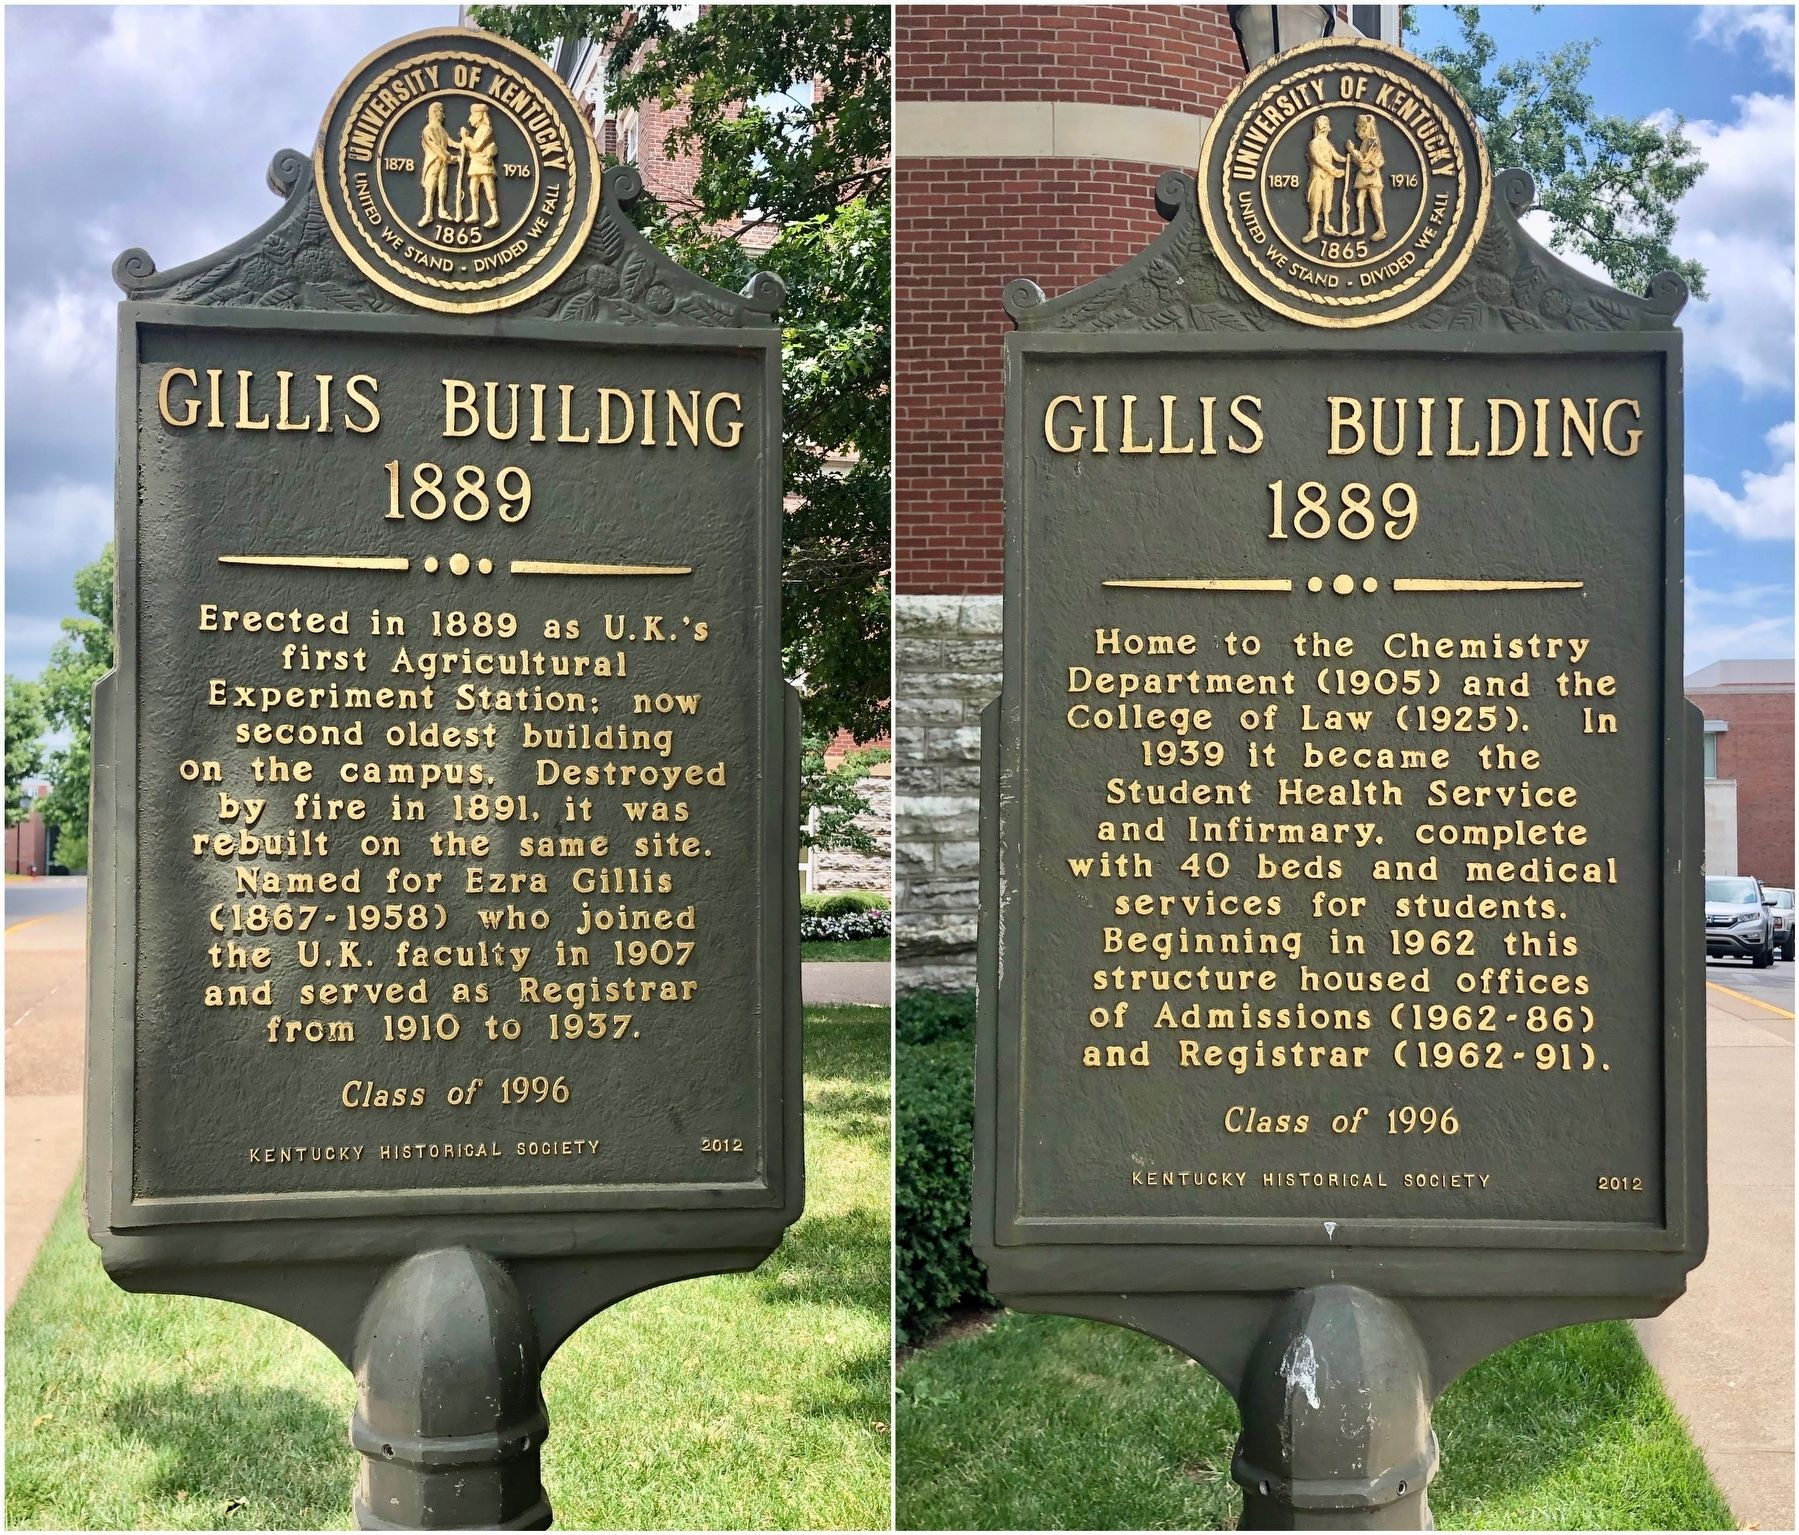 Gillis Building 1889 Marker image. Click for full size.